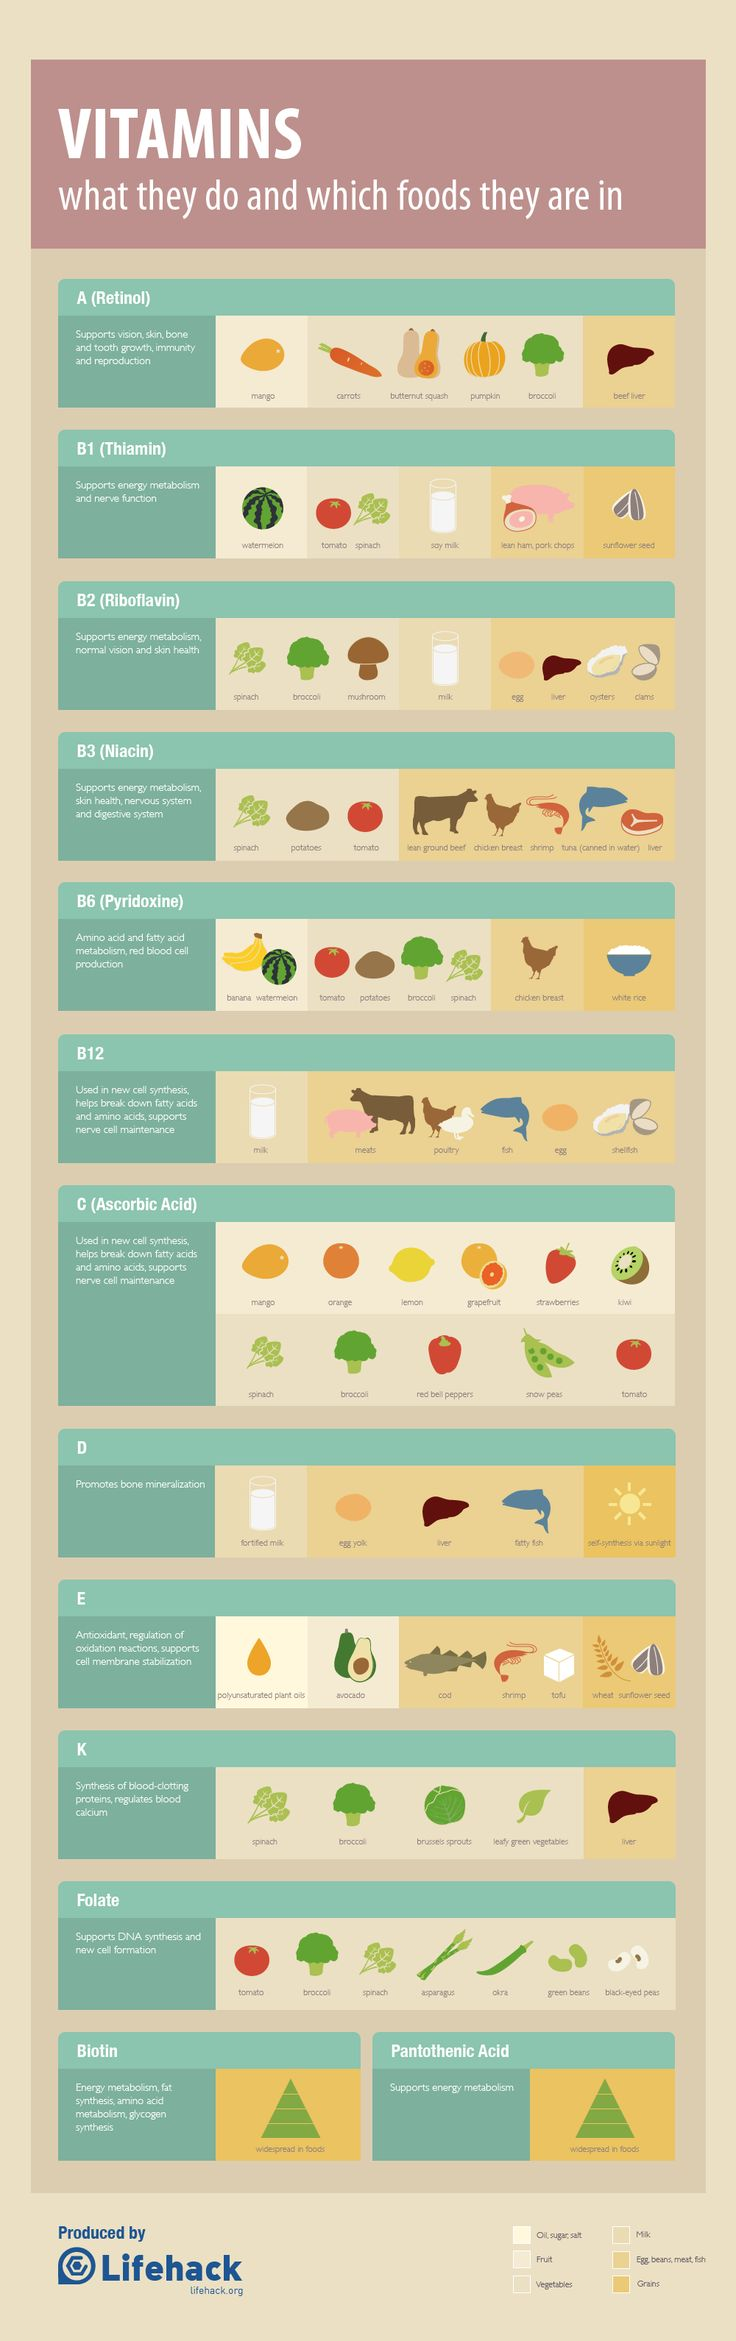 A simplified guide to vitamins in healthy foods!